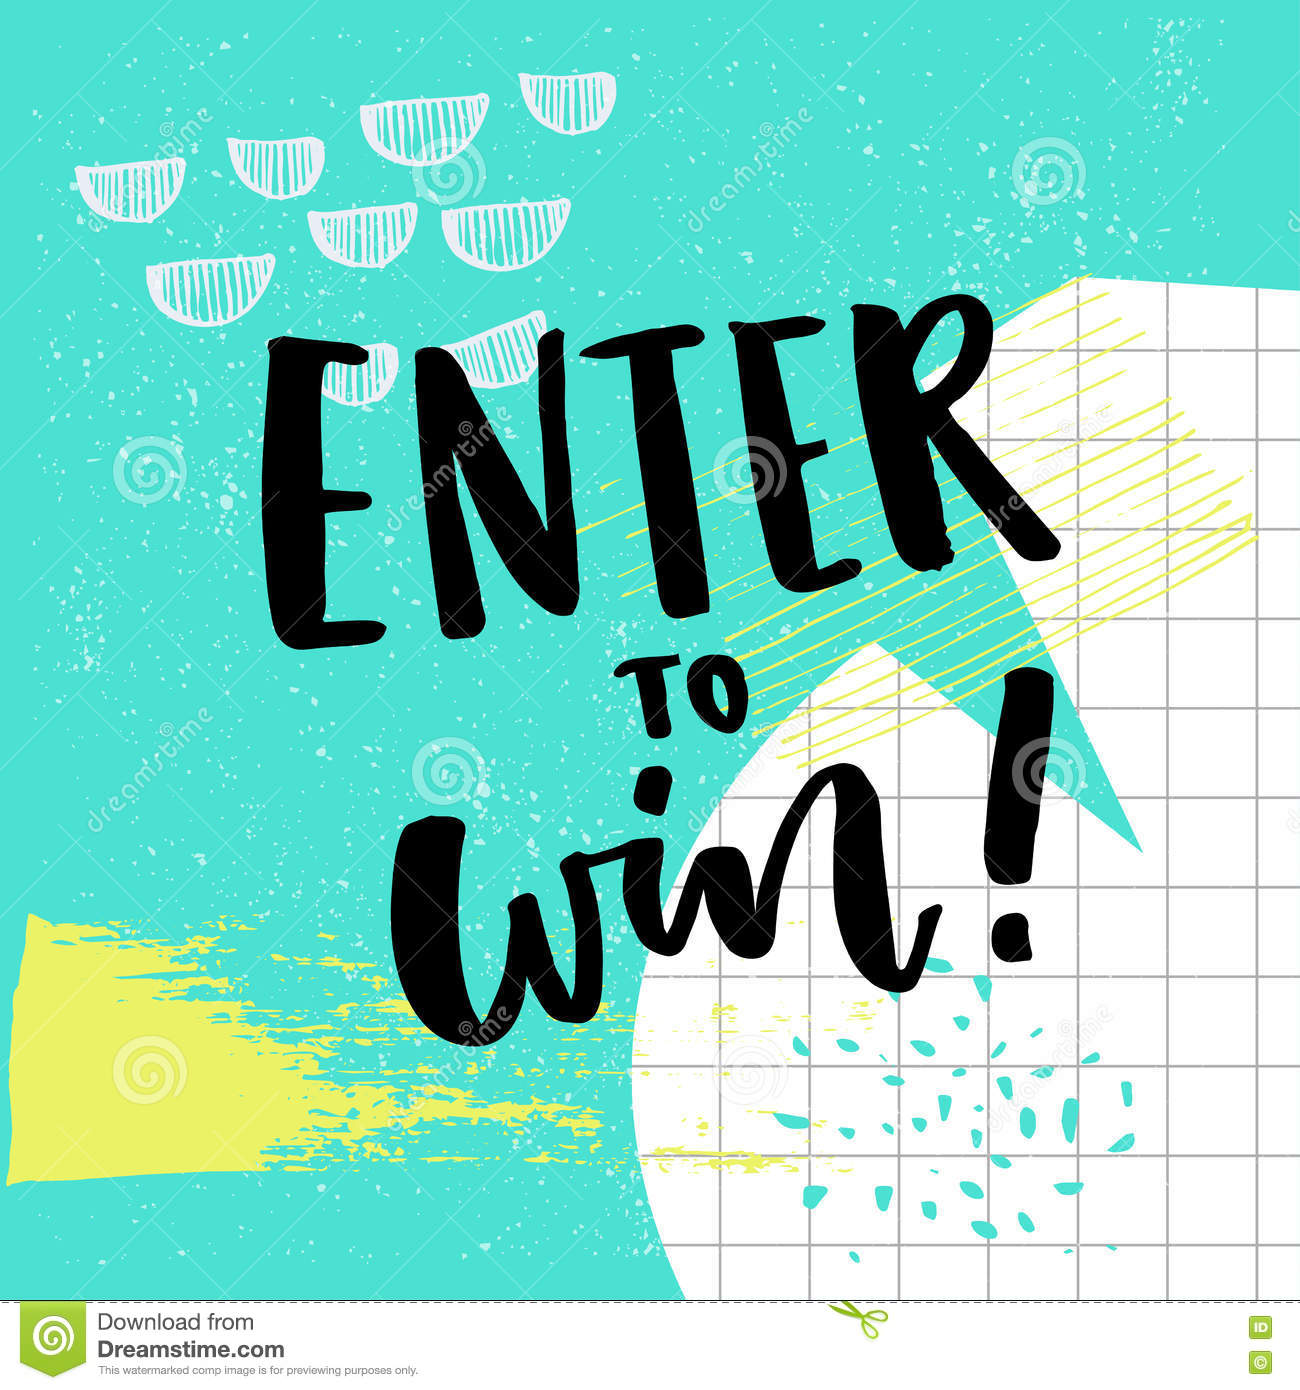 giveaway stock illustrations giveaway stock illustrations enter to win text for giveaway social media contest vector banner colorful abstract background